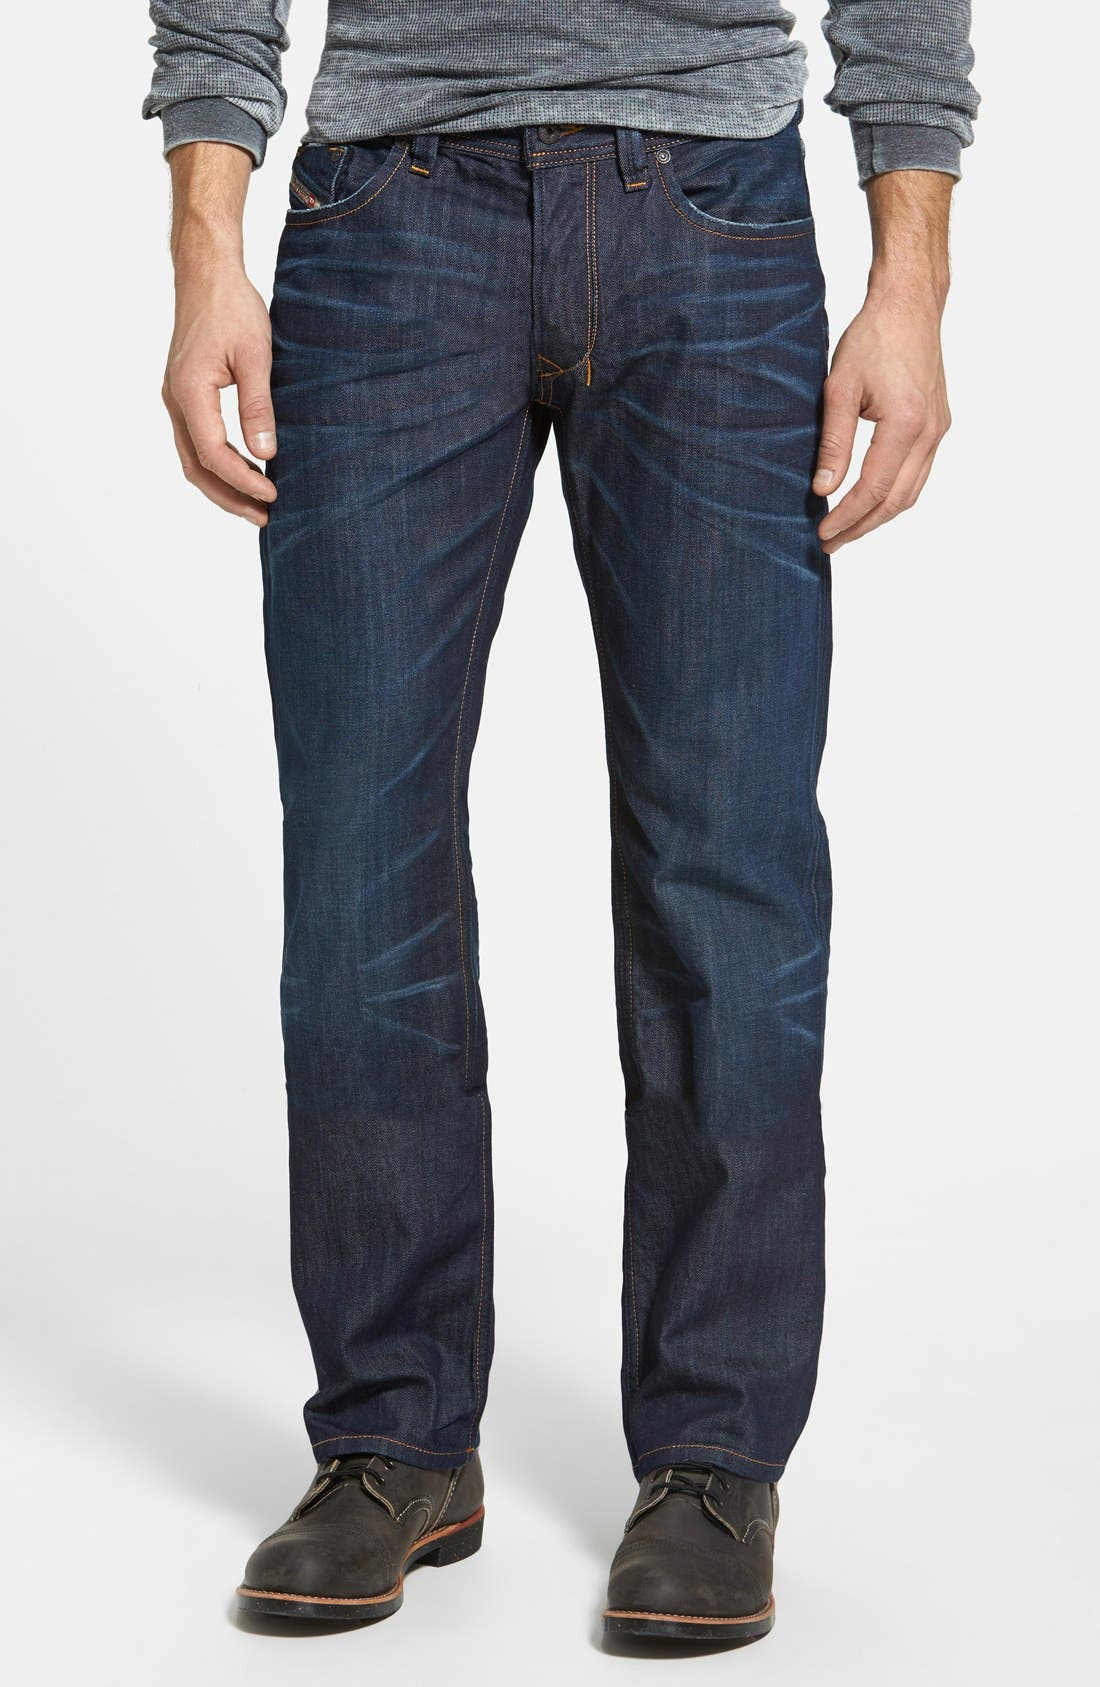 Larkee Straight Leg Jeans,                         Main,                         color,